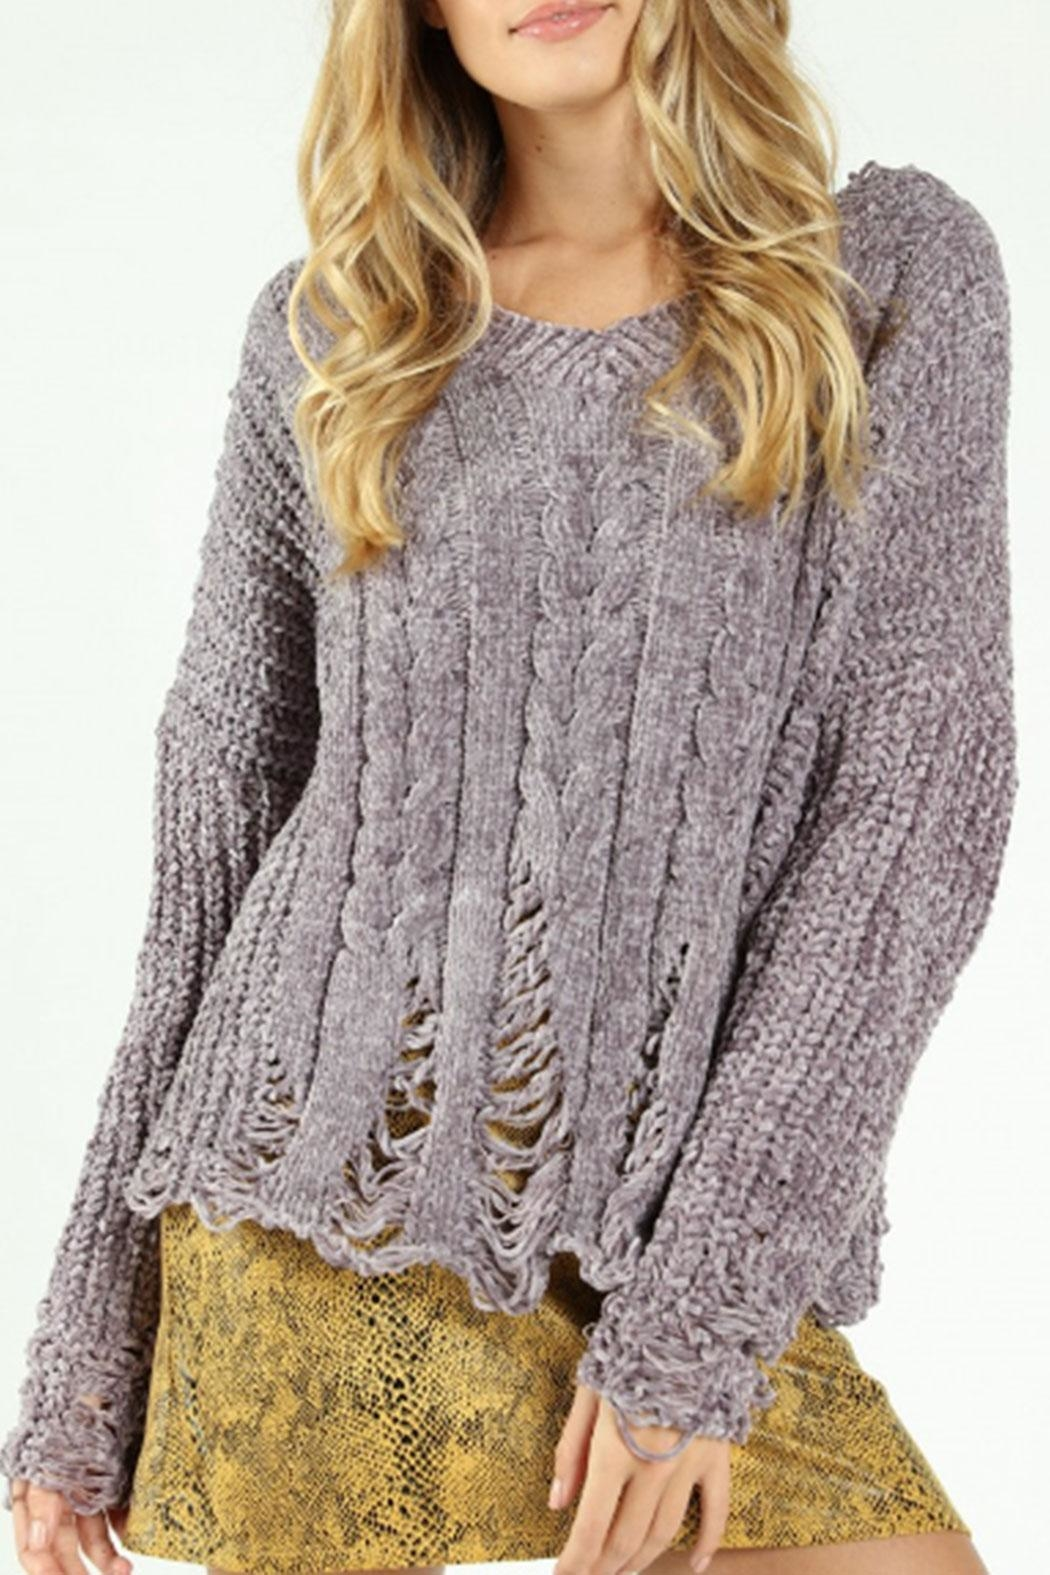 Honey Punch Destructed-Chenille Cable Sweater - Main Image